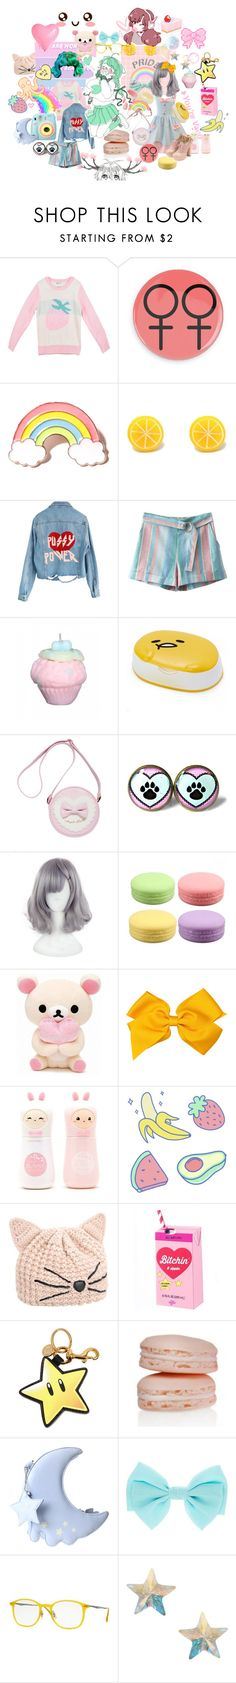 """""""Pansexual pride"""" by disney-loves-mel ❤ liked on Polyvore featuring Local Heroes, Polaroid, High Heels Suicide, My Little Day, TONYMOLY, Karl Lagerfeld, Moschino, Opal London, Ray-Ban and Orelia"""